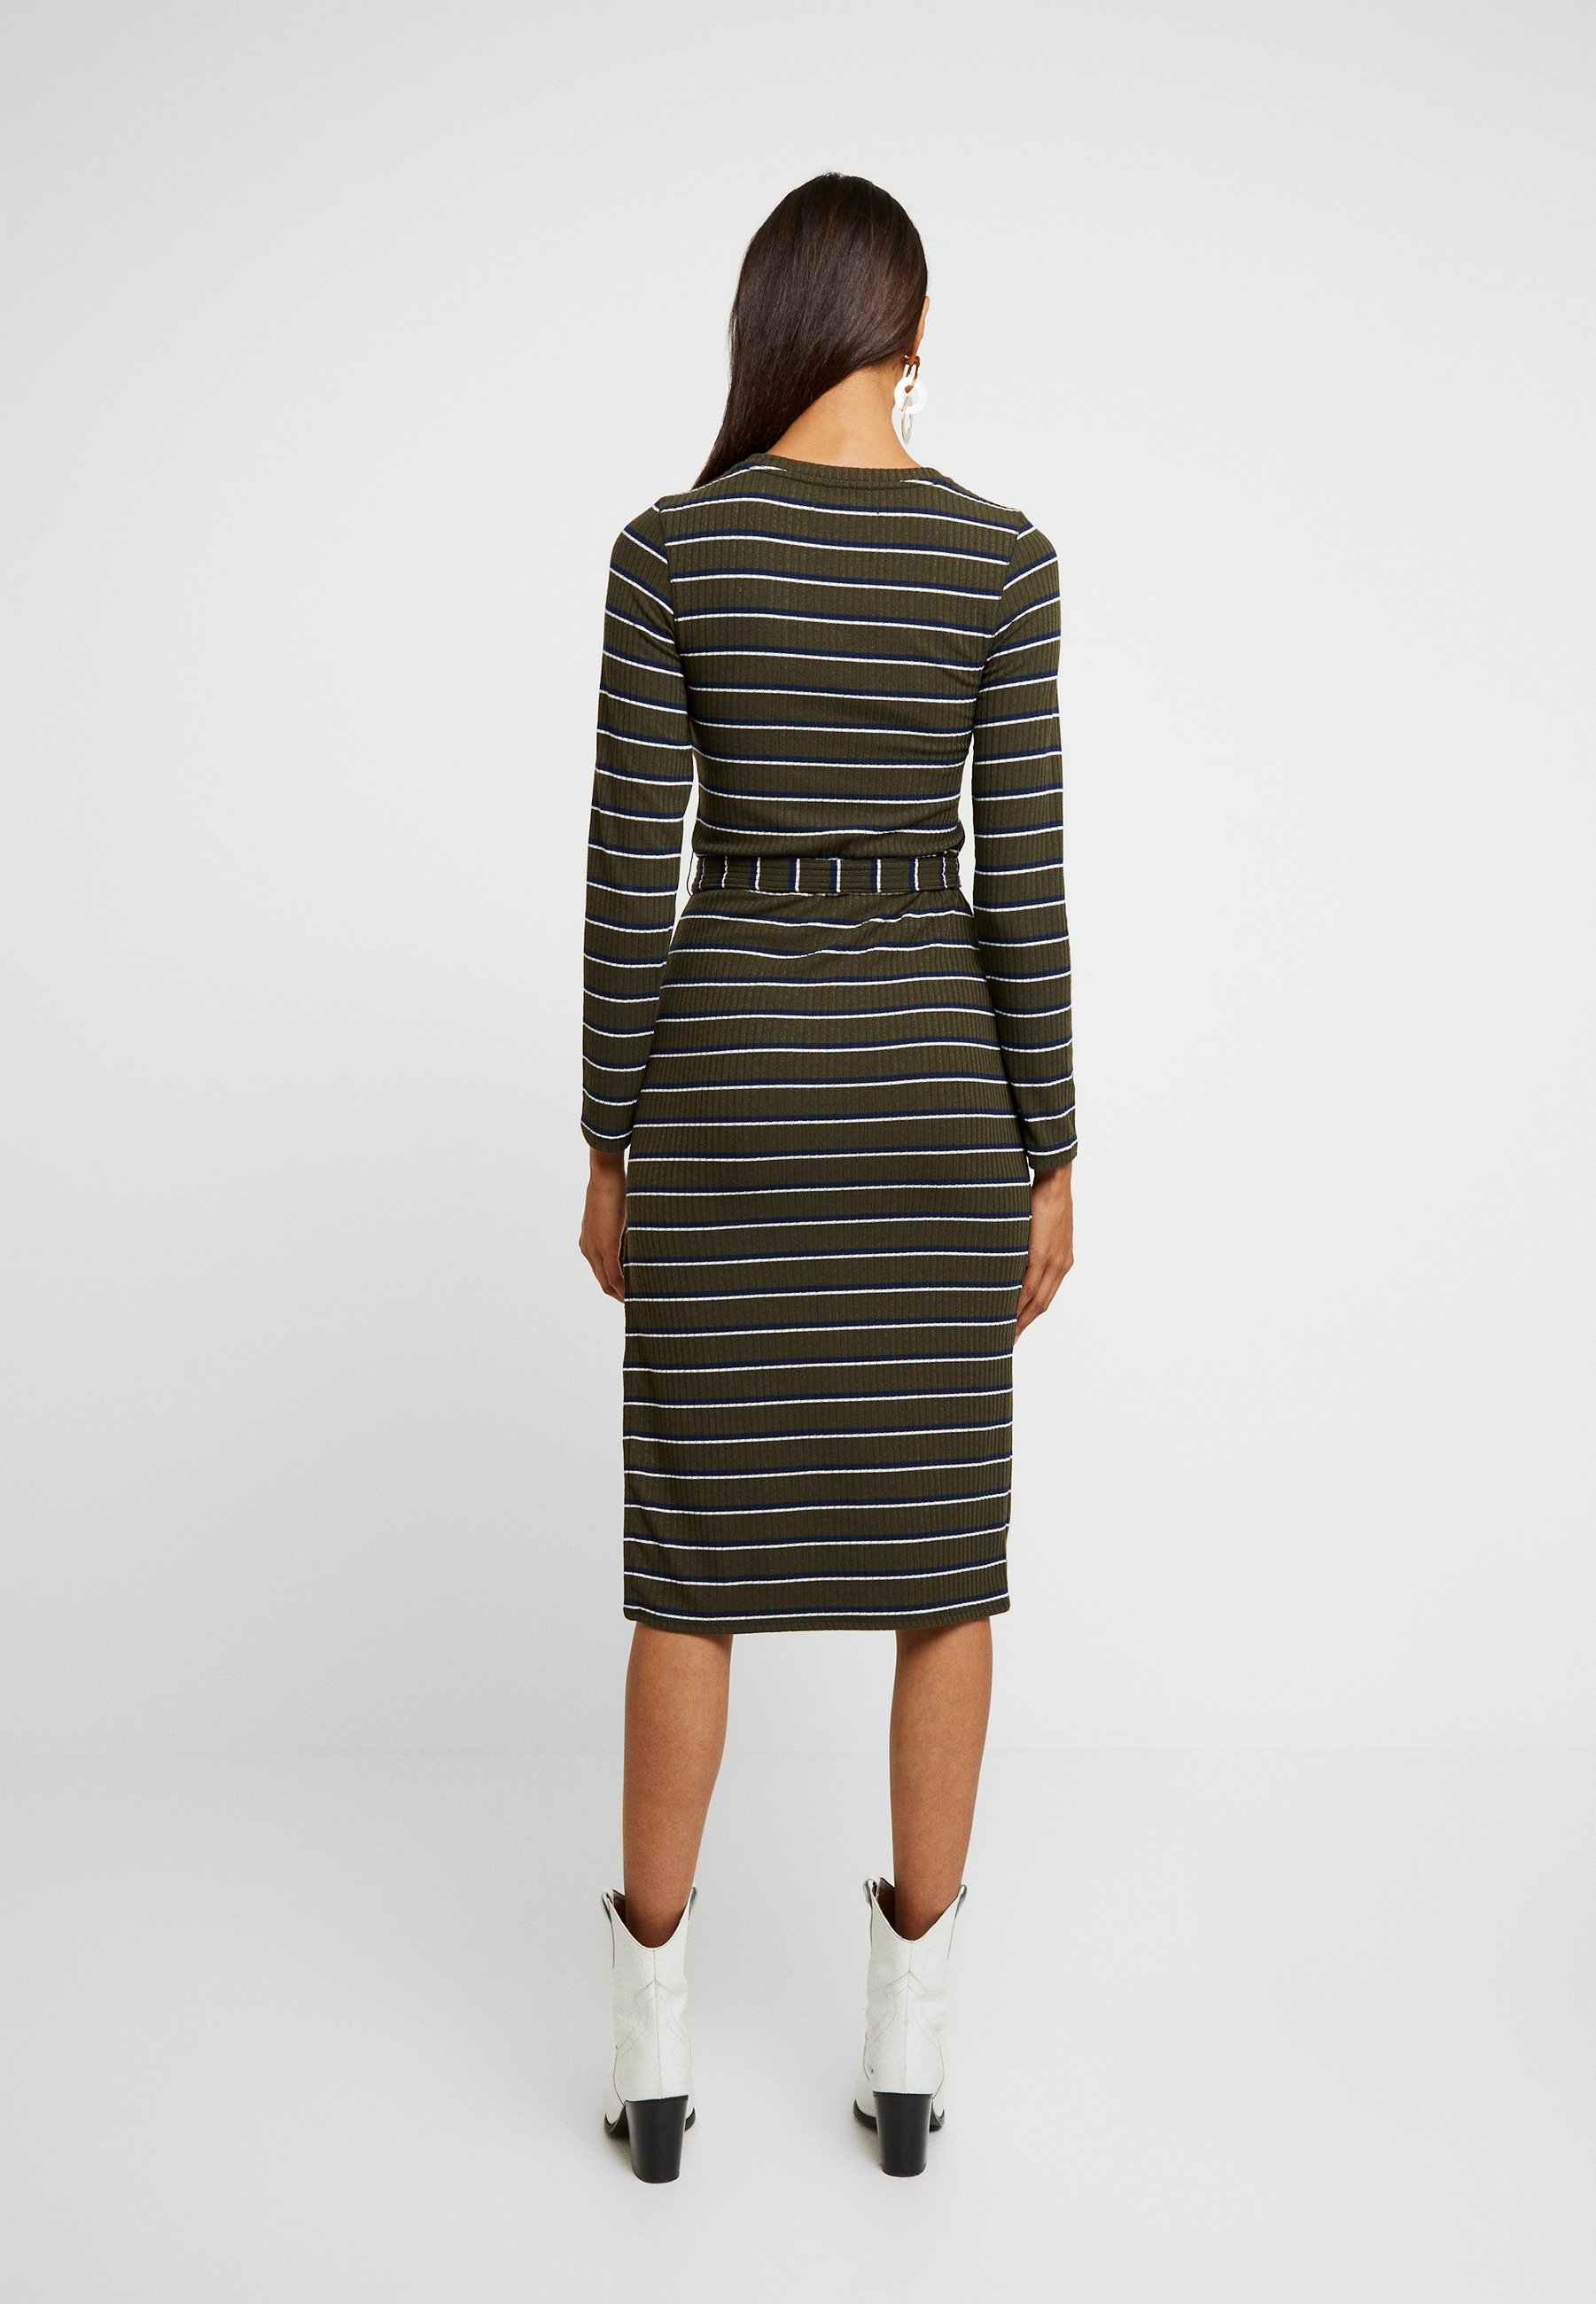 Abercrombie & Fitch DRESS - Tubino olive